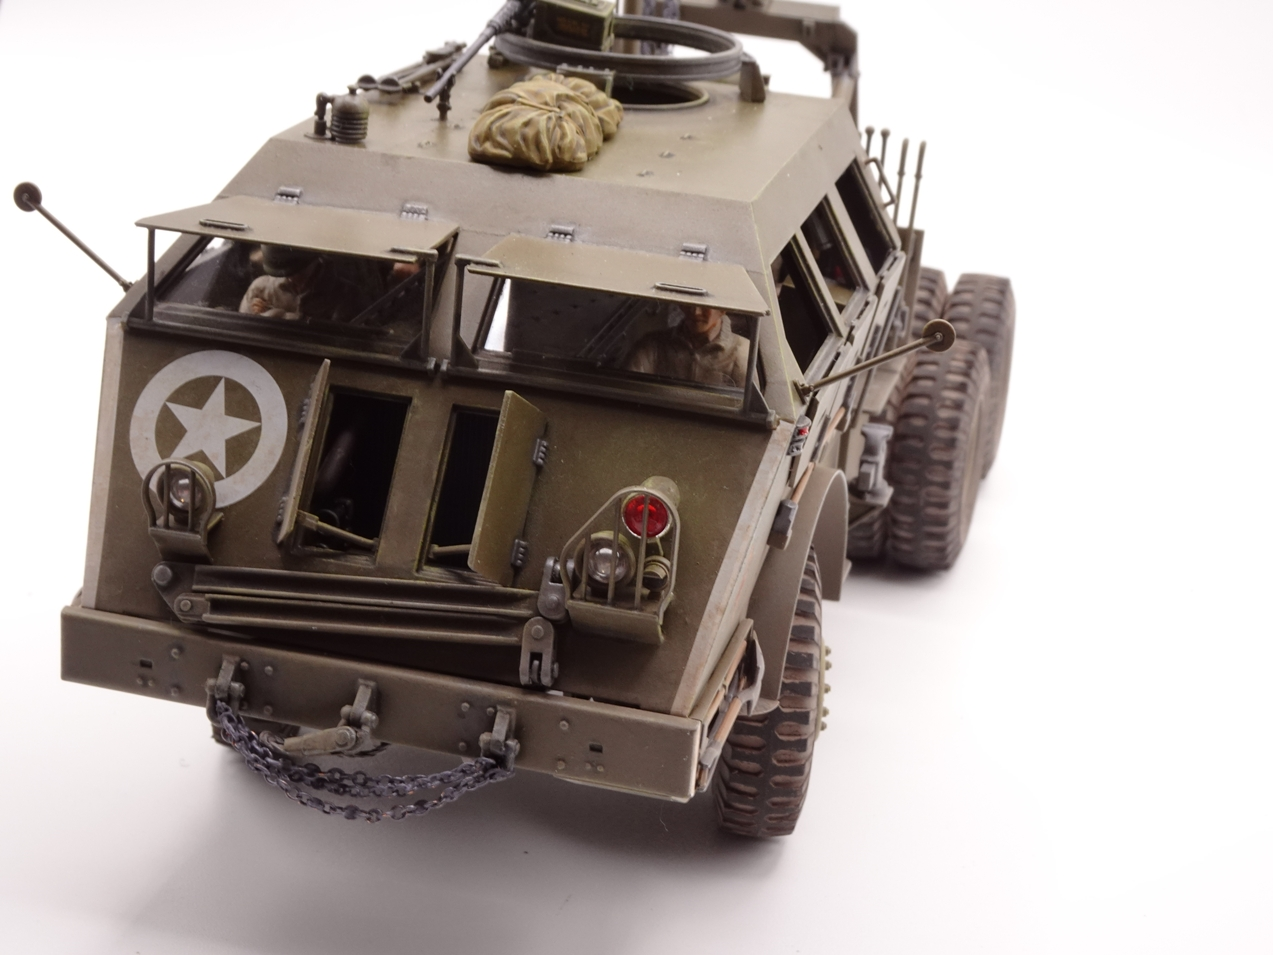 [Tamiya 1/35] M26 Armored tank recovery vehicle réf. 35244 - Page 4 M26-fin-6